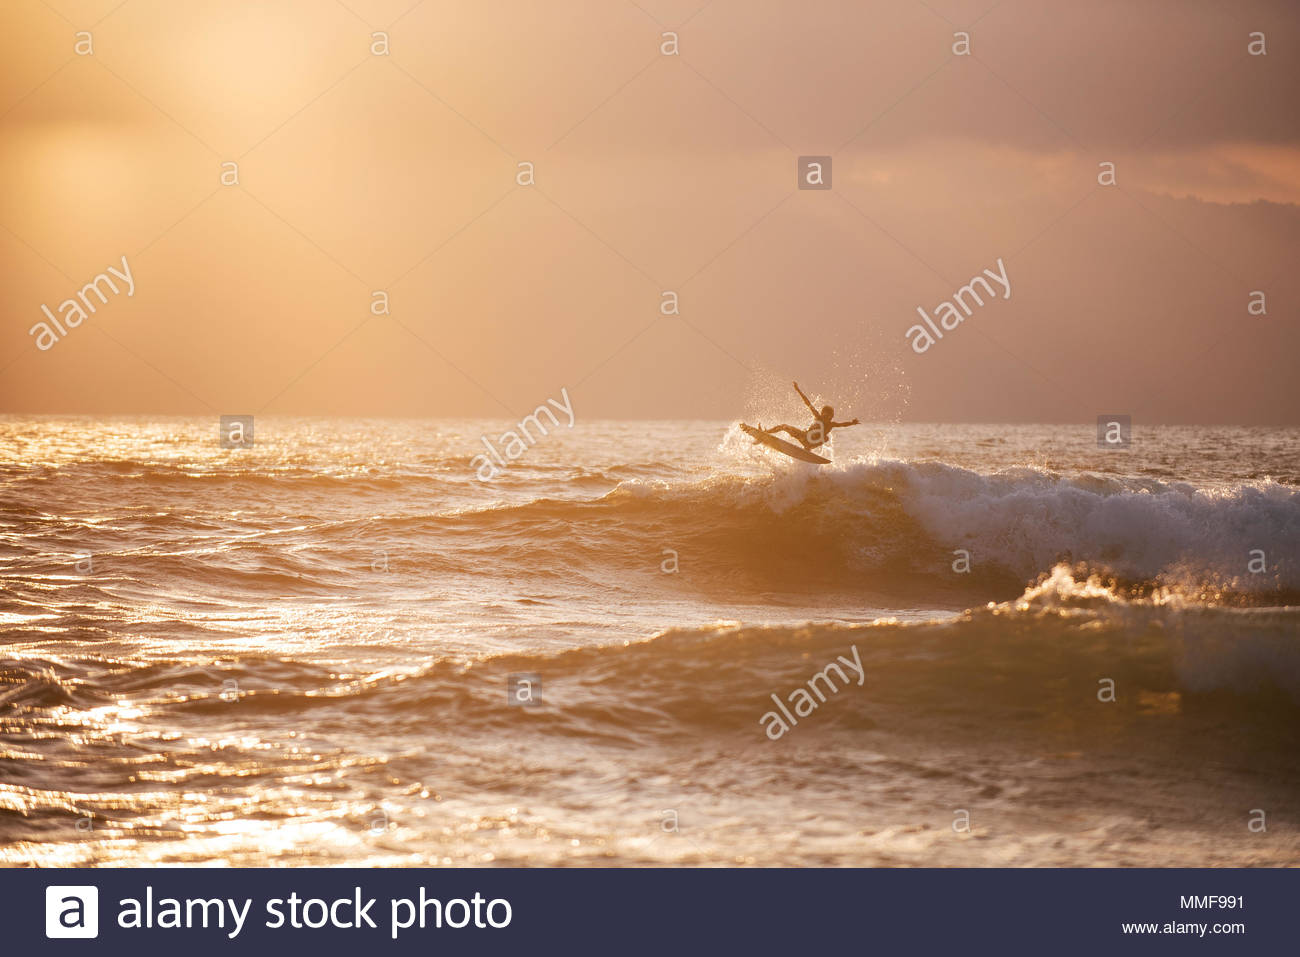 A kid surfer airs out of a little wave at Lakey Peak. - Stock Image